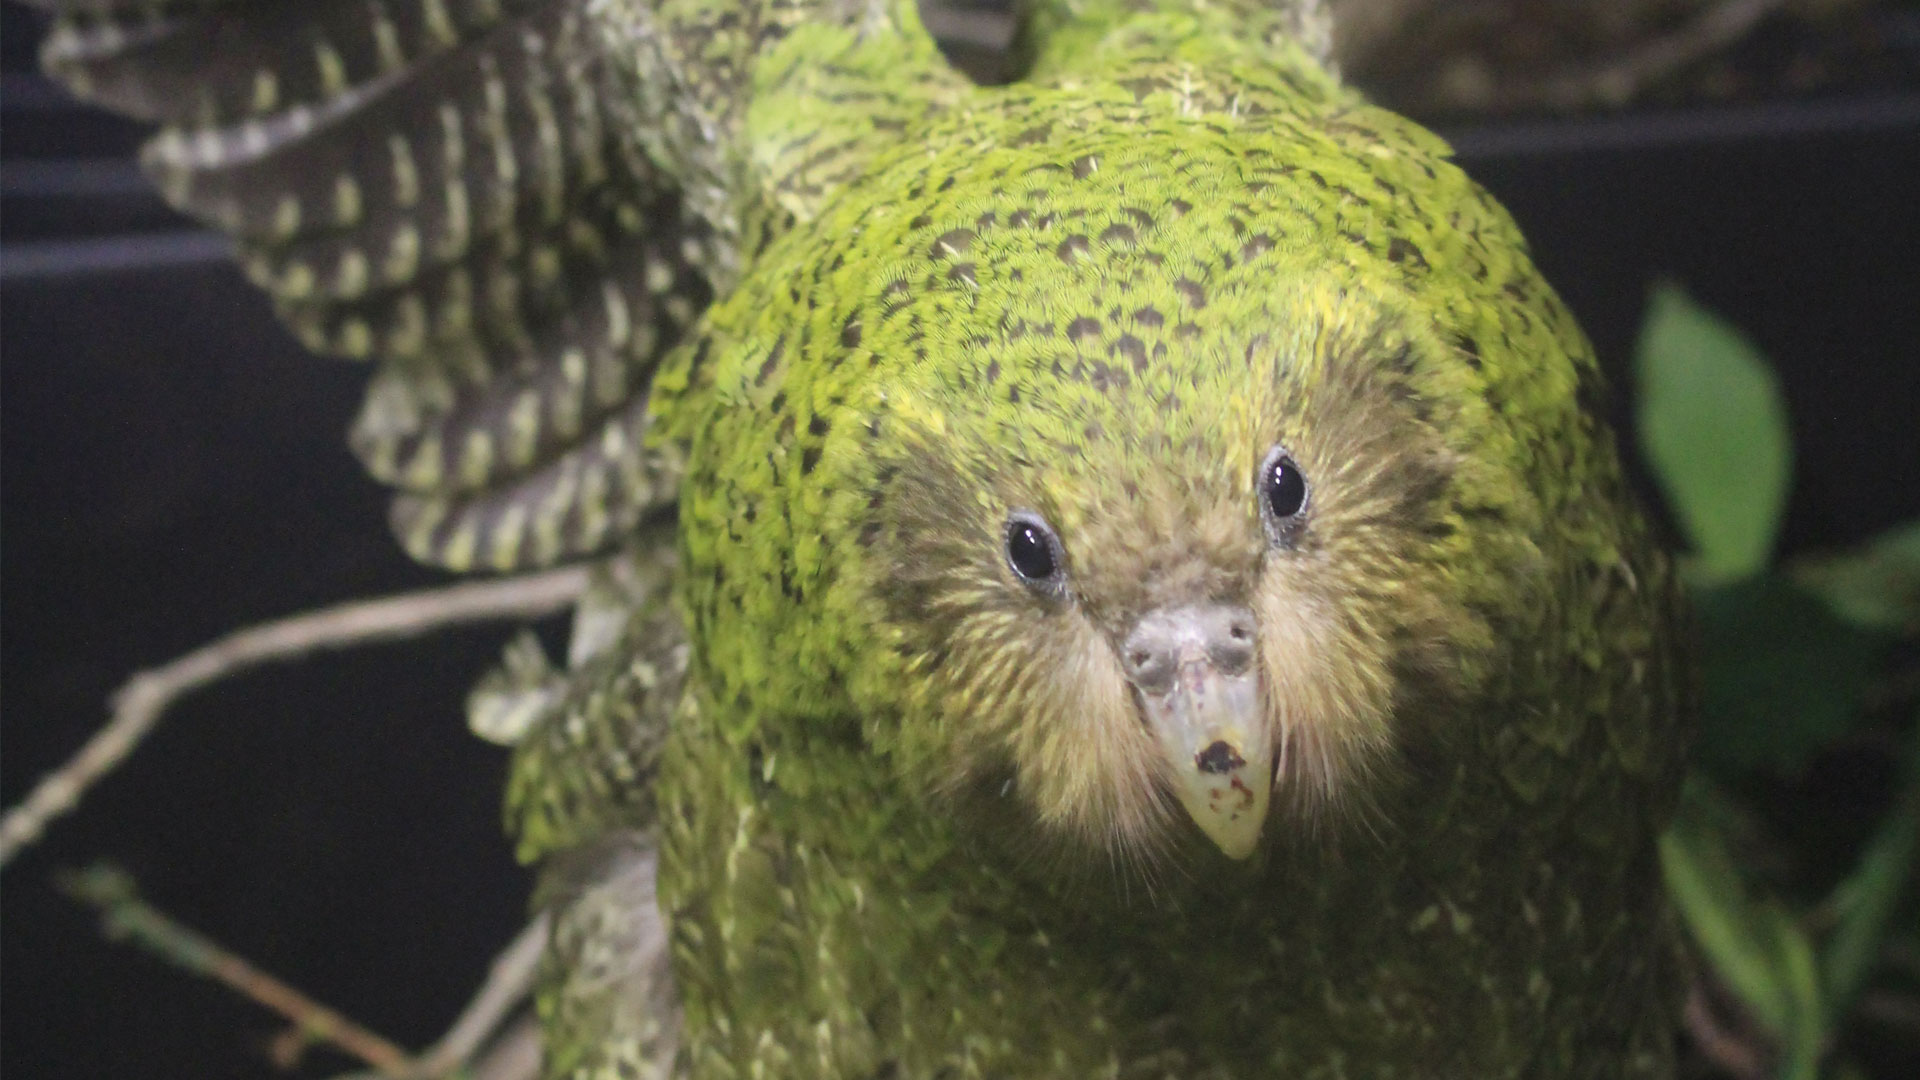 https://rfacdn.nz/zoo/assets/media/kakapo-komaru-kids-gallery-1.jpg